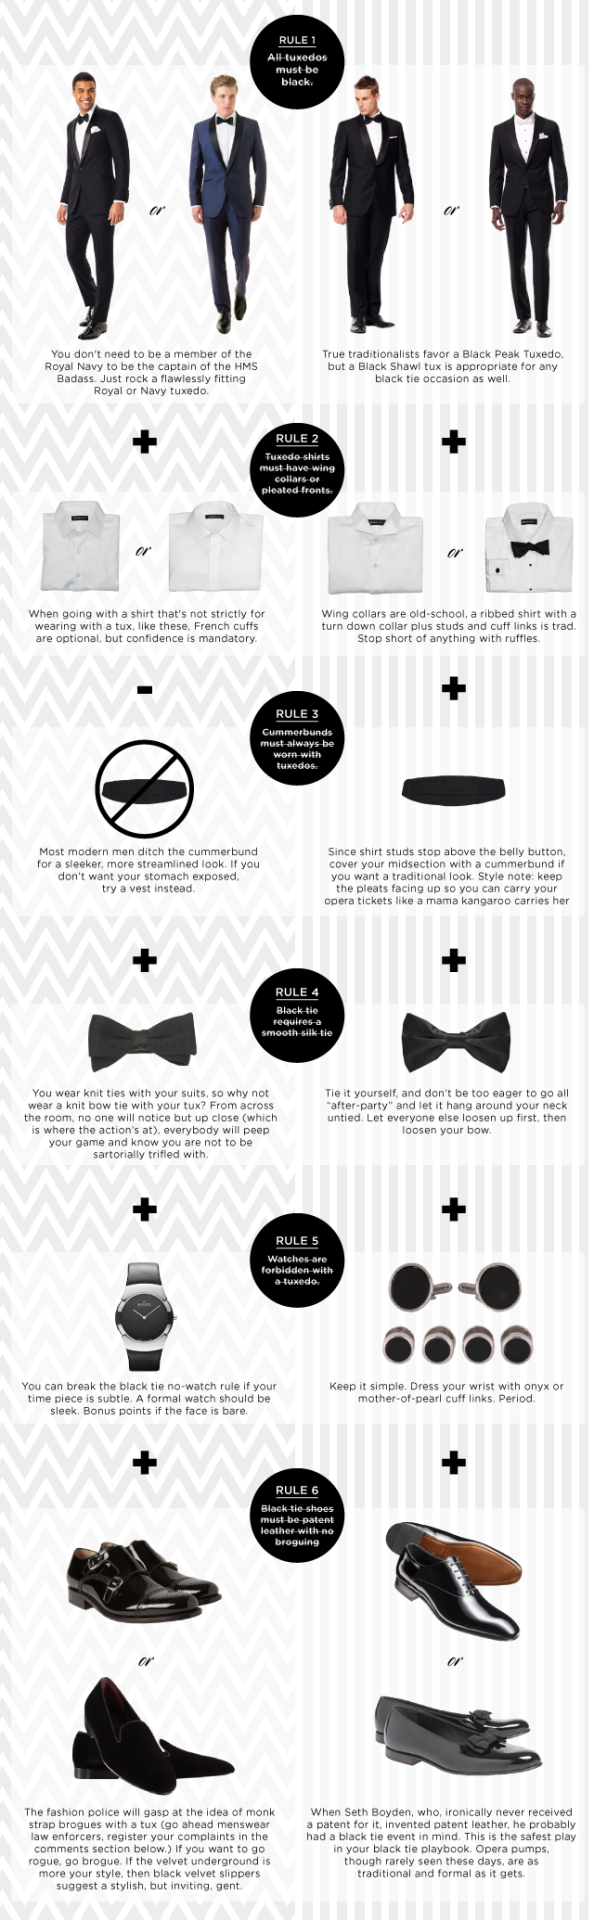 25 Life Changing Style Charts Every Guy Needs Right Now From Howtotiethebowtieknottyinginstructionspng 12 But Wait Maybe Youre In The Market For A Tux Consider These Rulesthat You Should Break